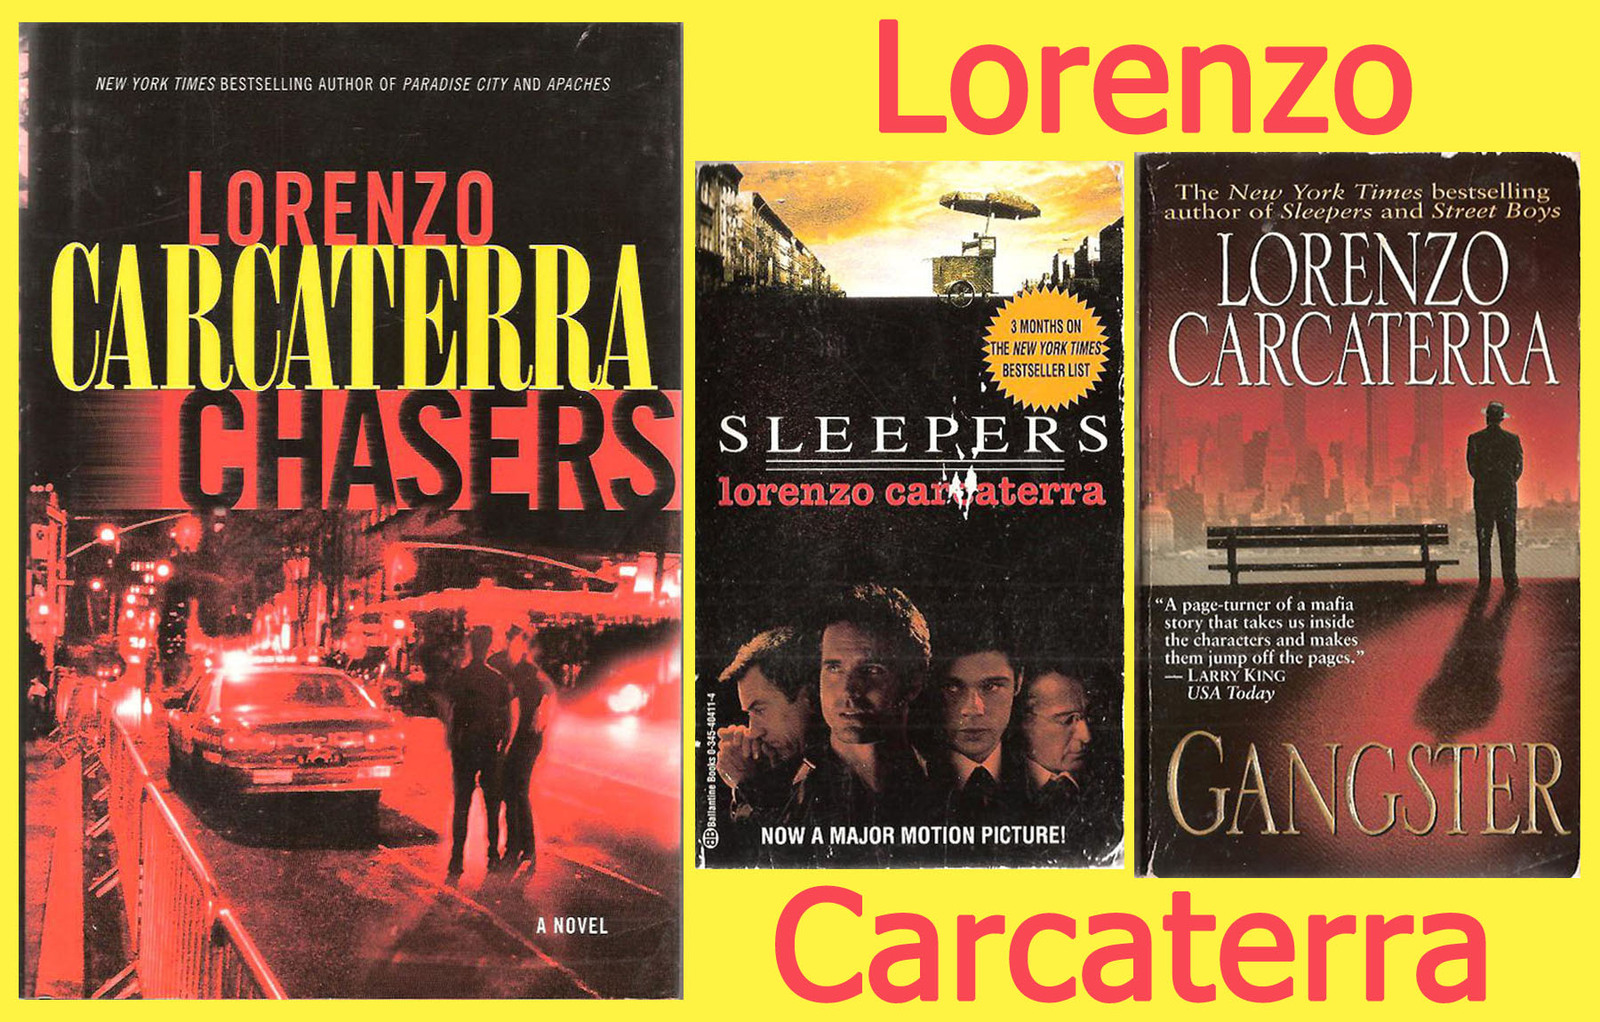 sleepers by lorenzo caracttera essay The source menu search for: search author and screenwriter lorenzo carcaterra to talk about and sleepers a safe place contains carcaterra's trademark.